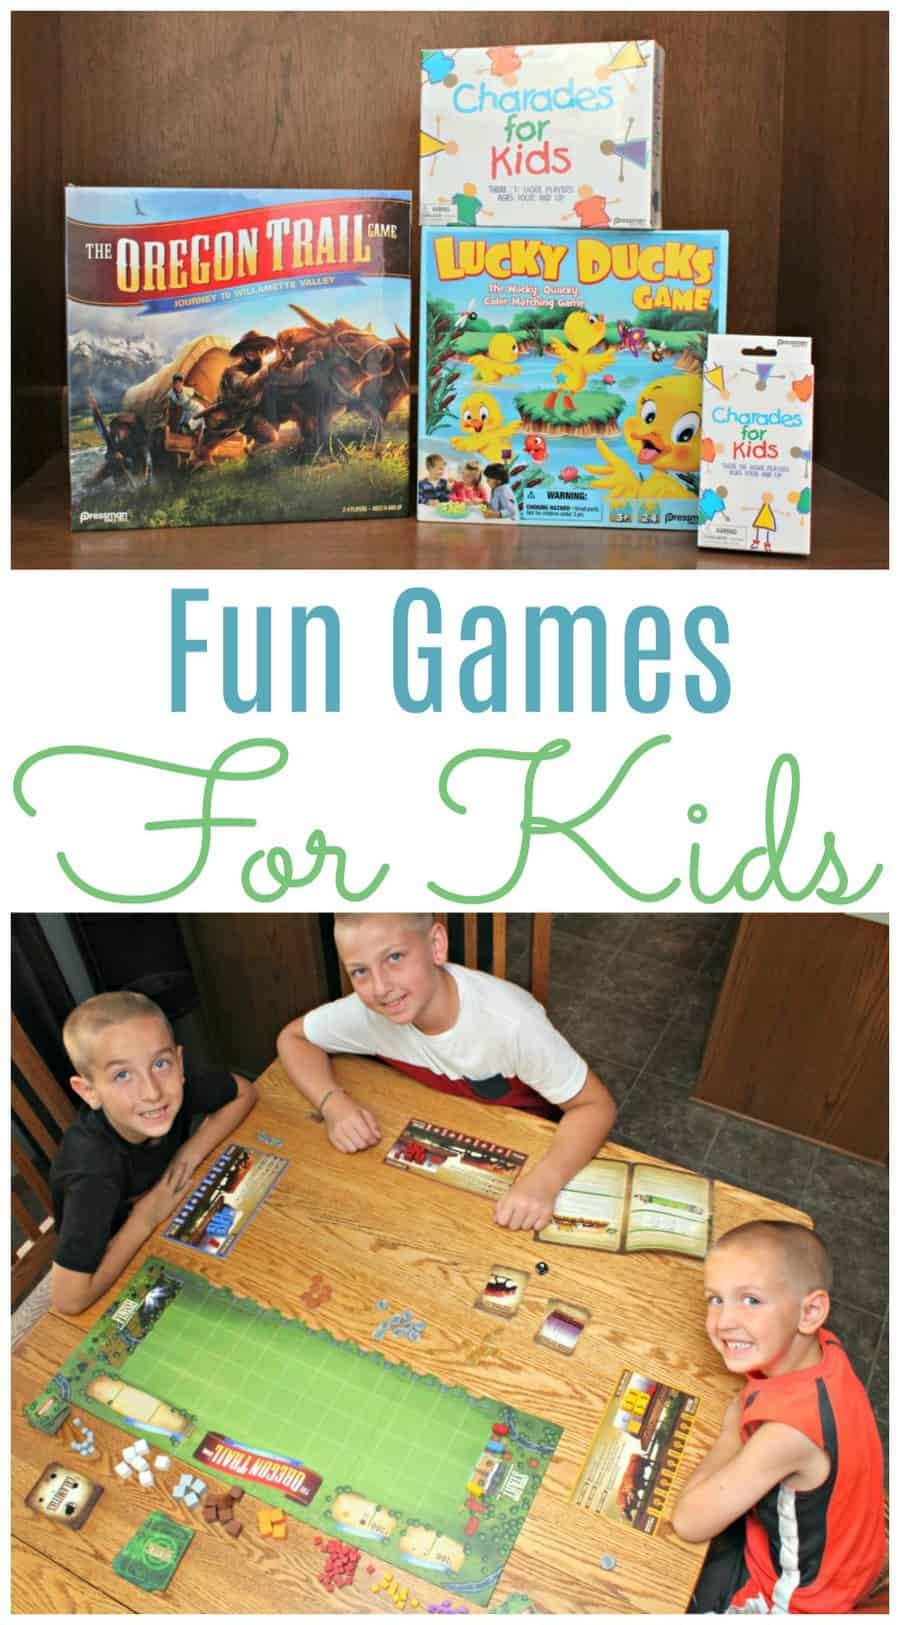 Fun Games For Kids By Pressman Toy Co.